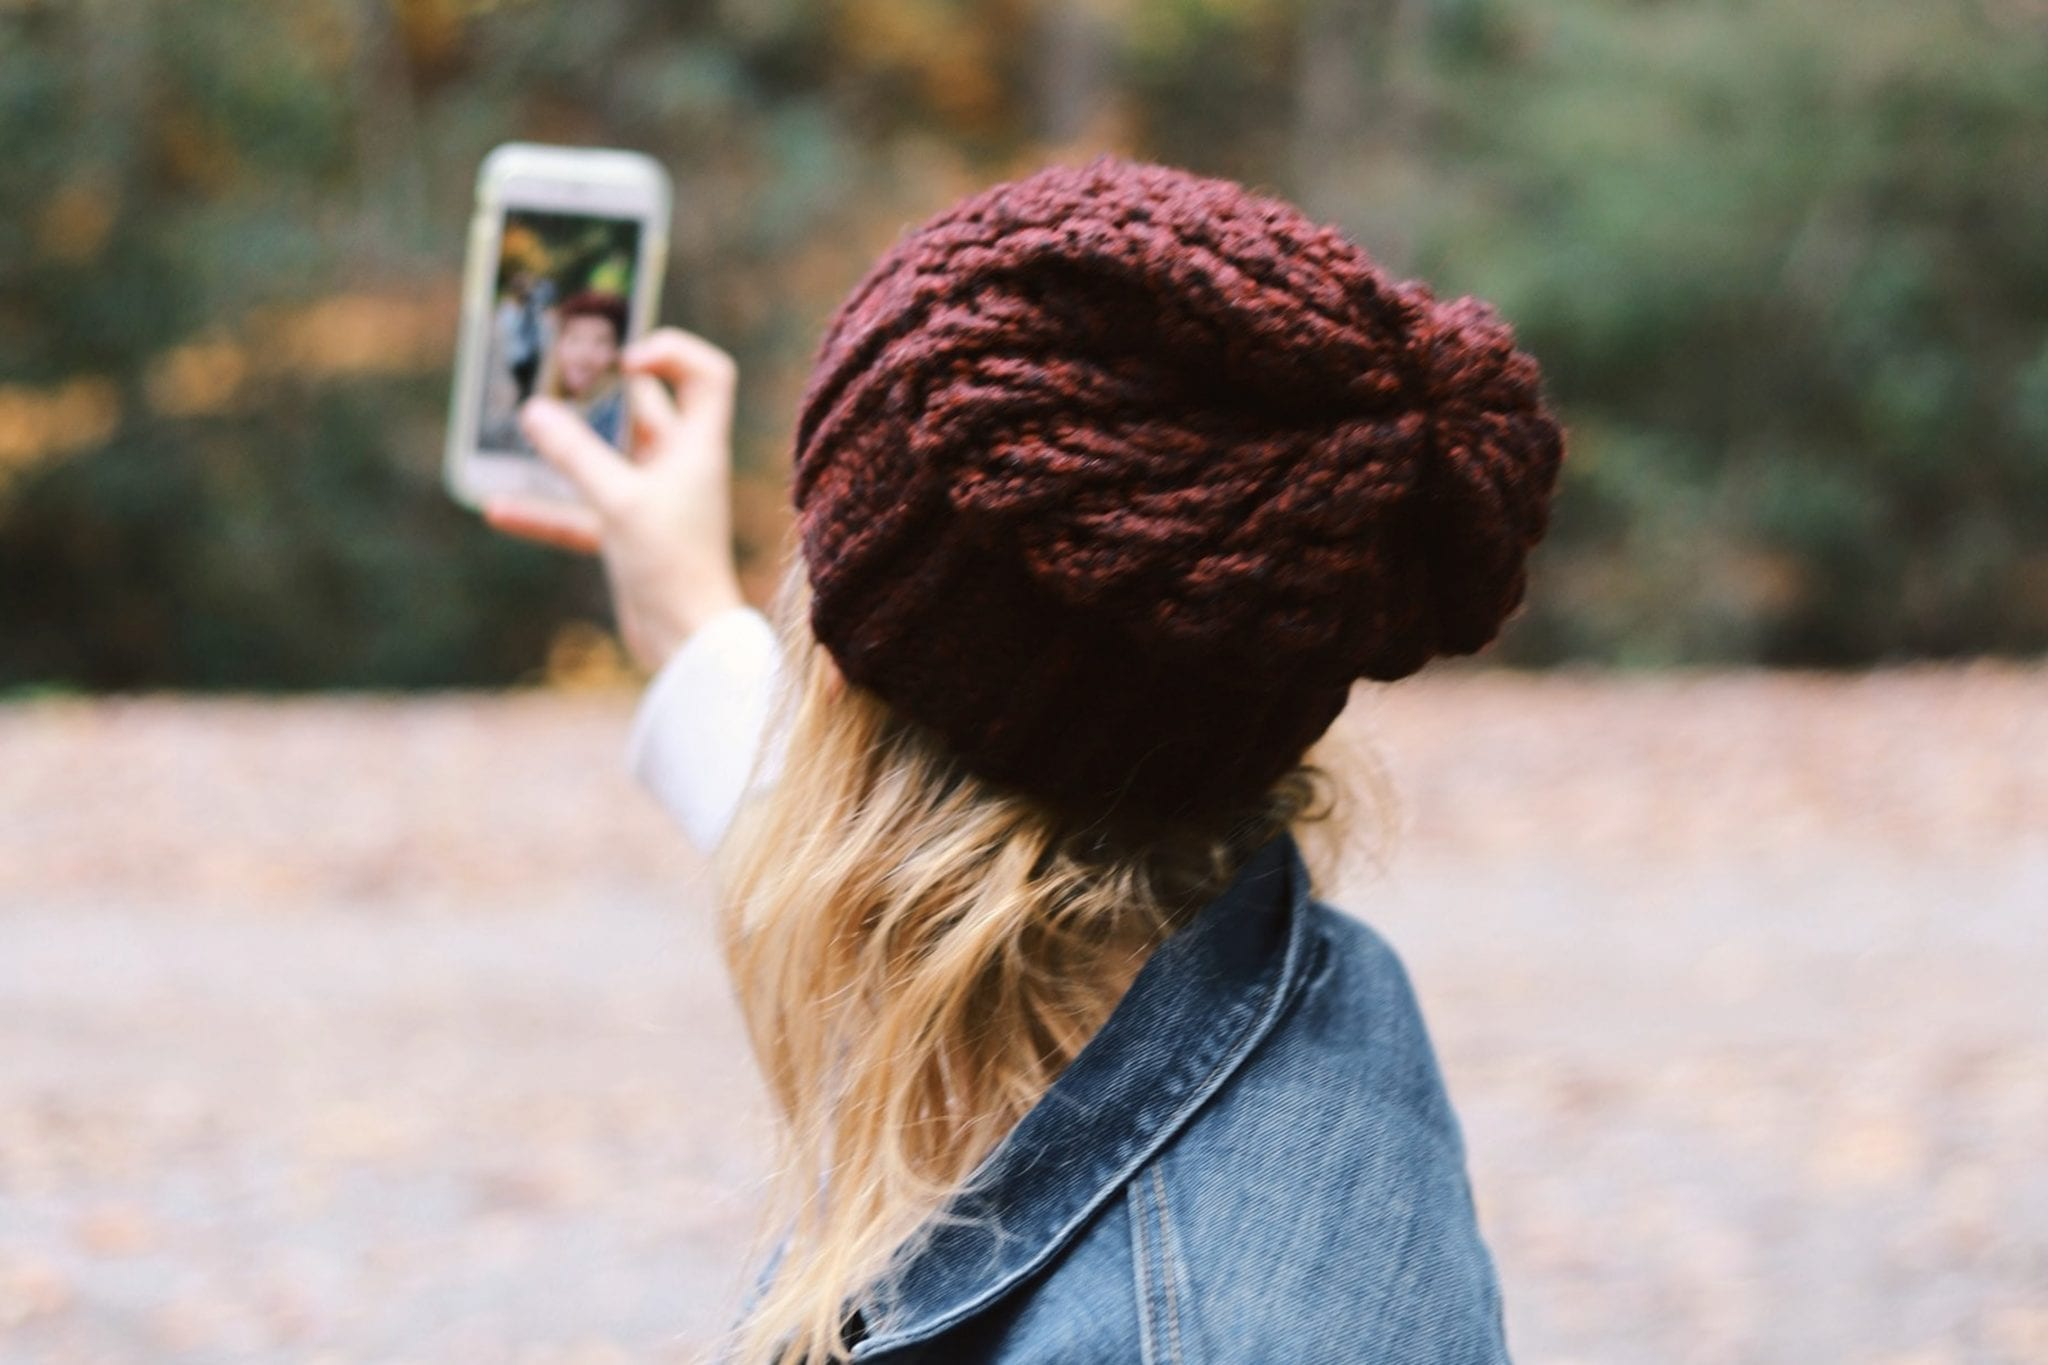 Instagram Reels: The Ultimate Guide for Marketers